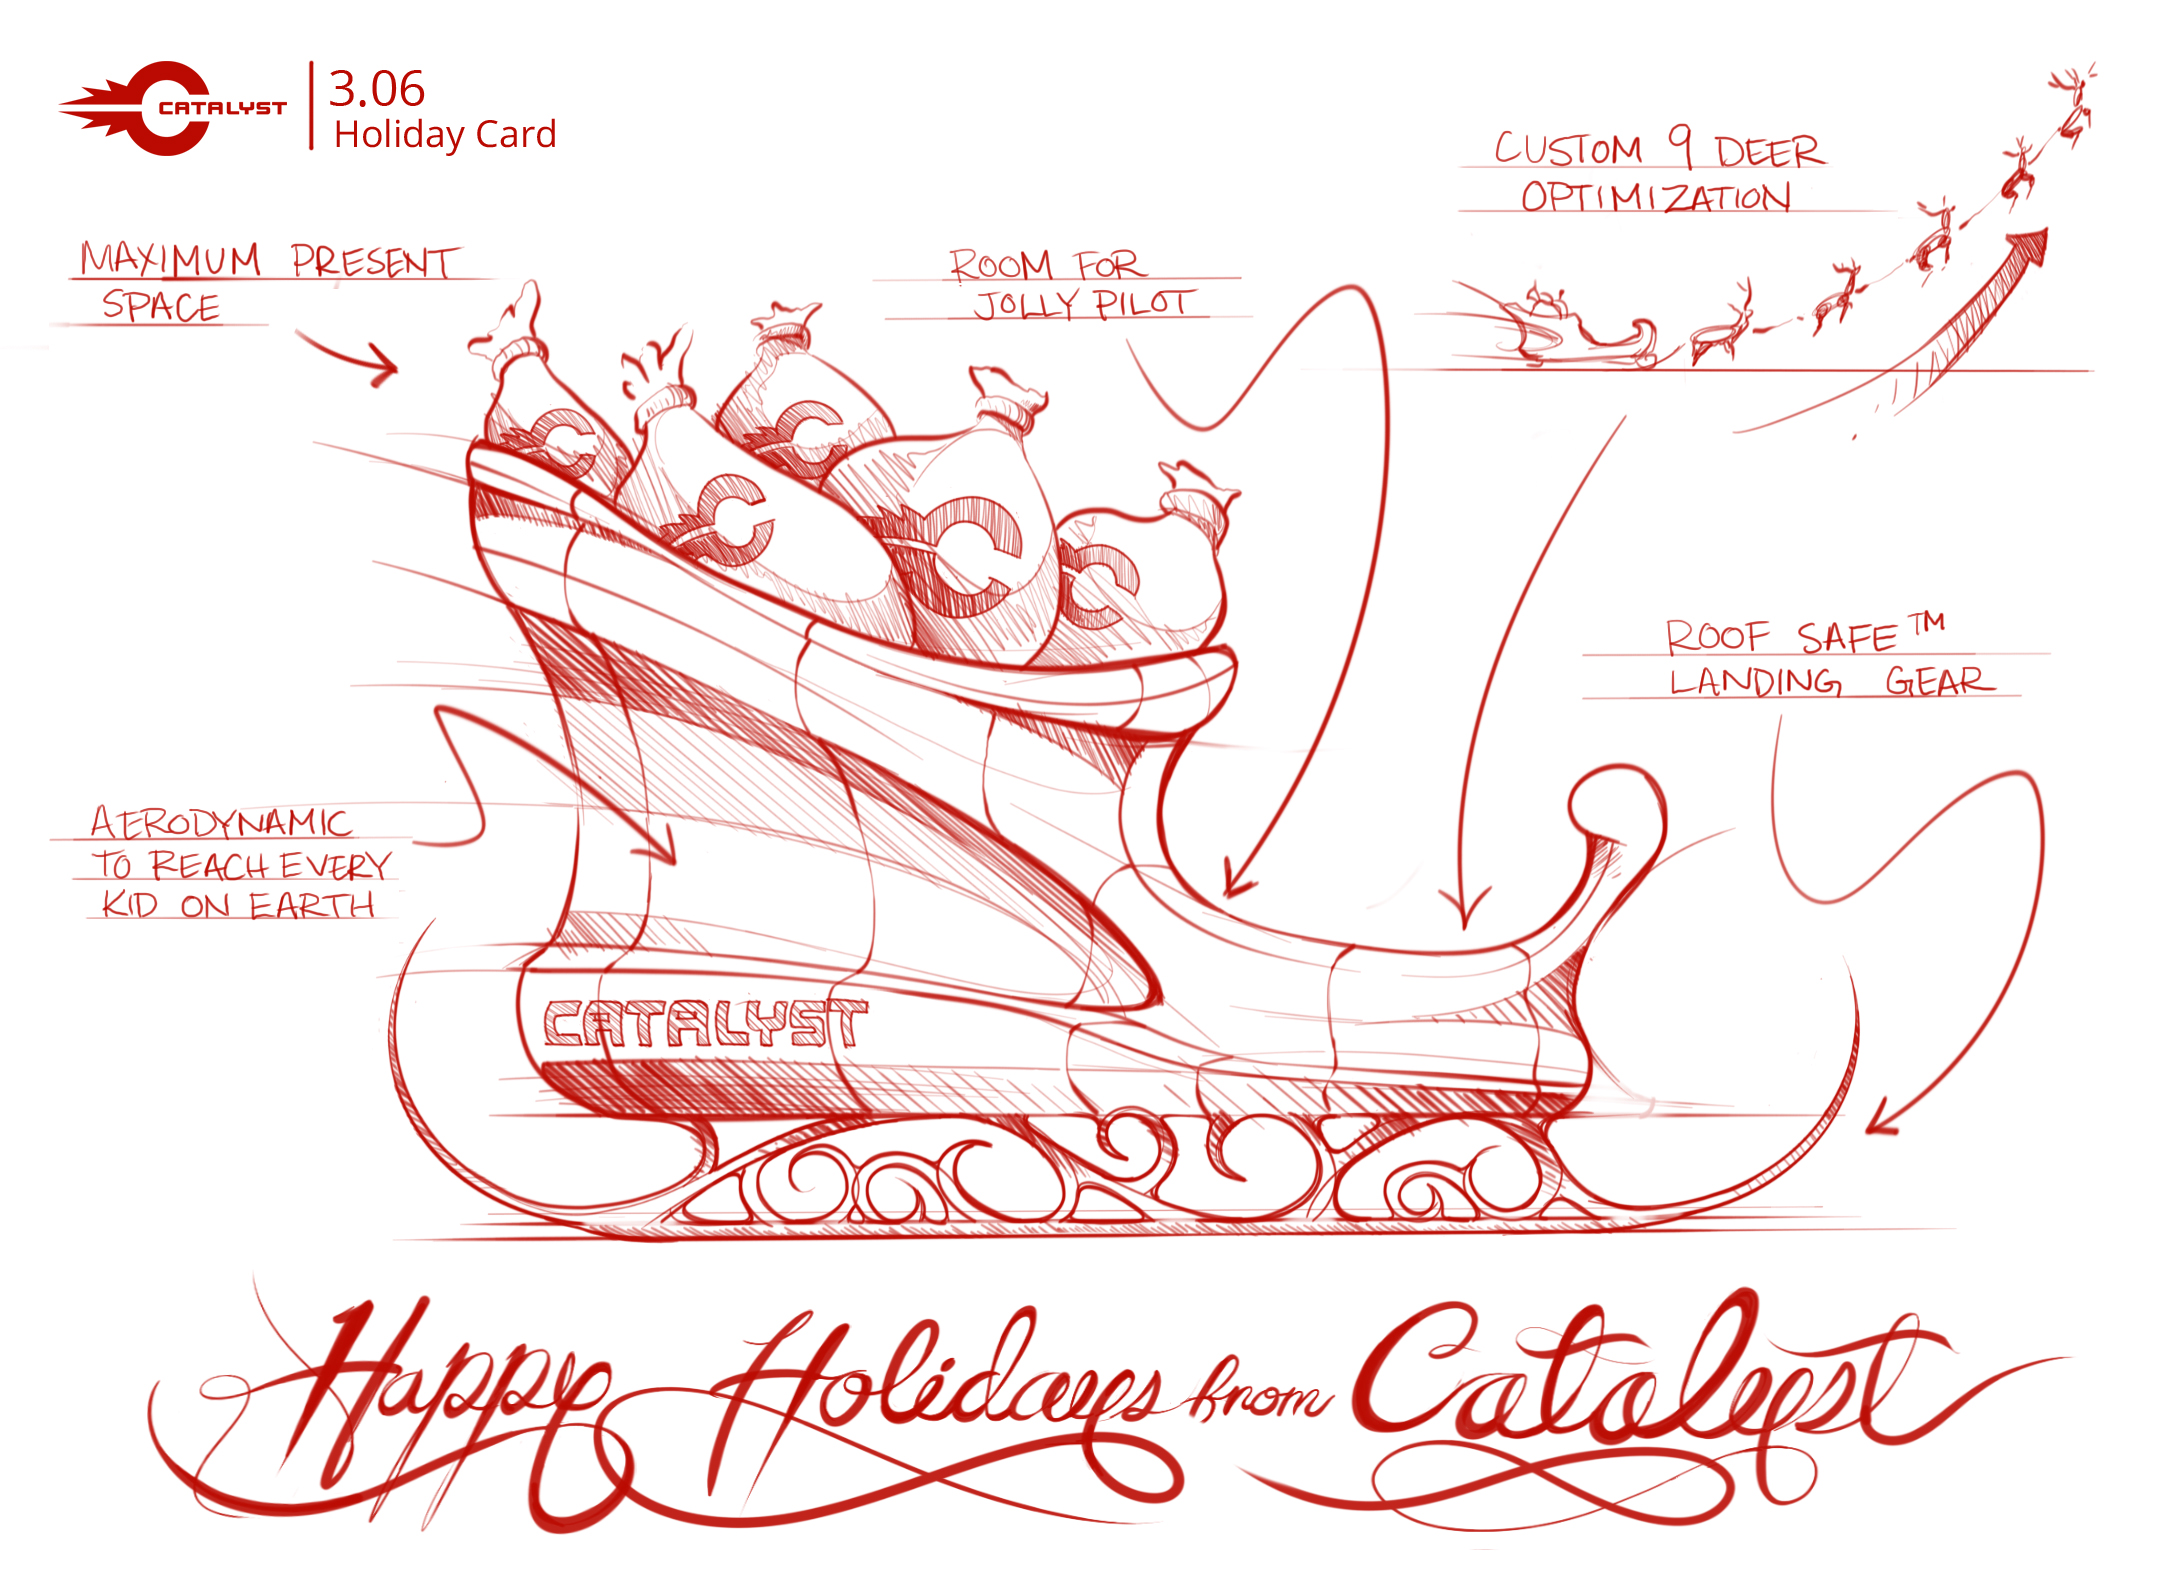 An Engineering Perspective on Santa Claus